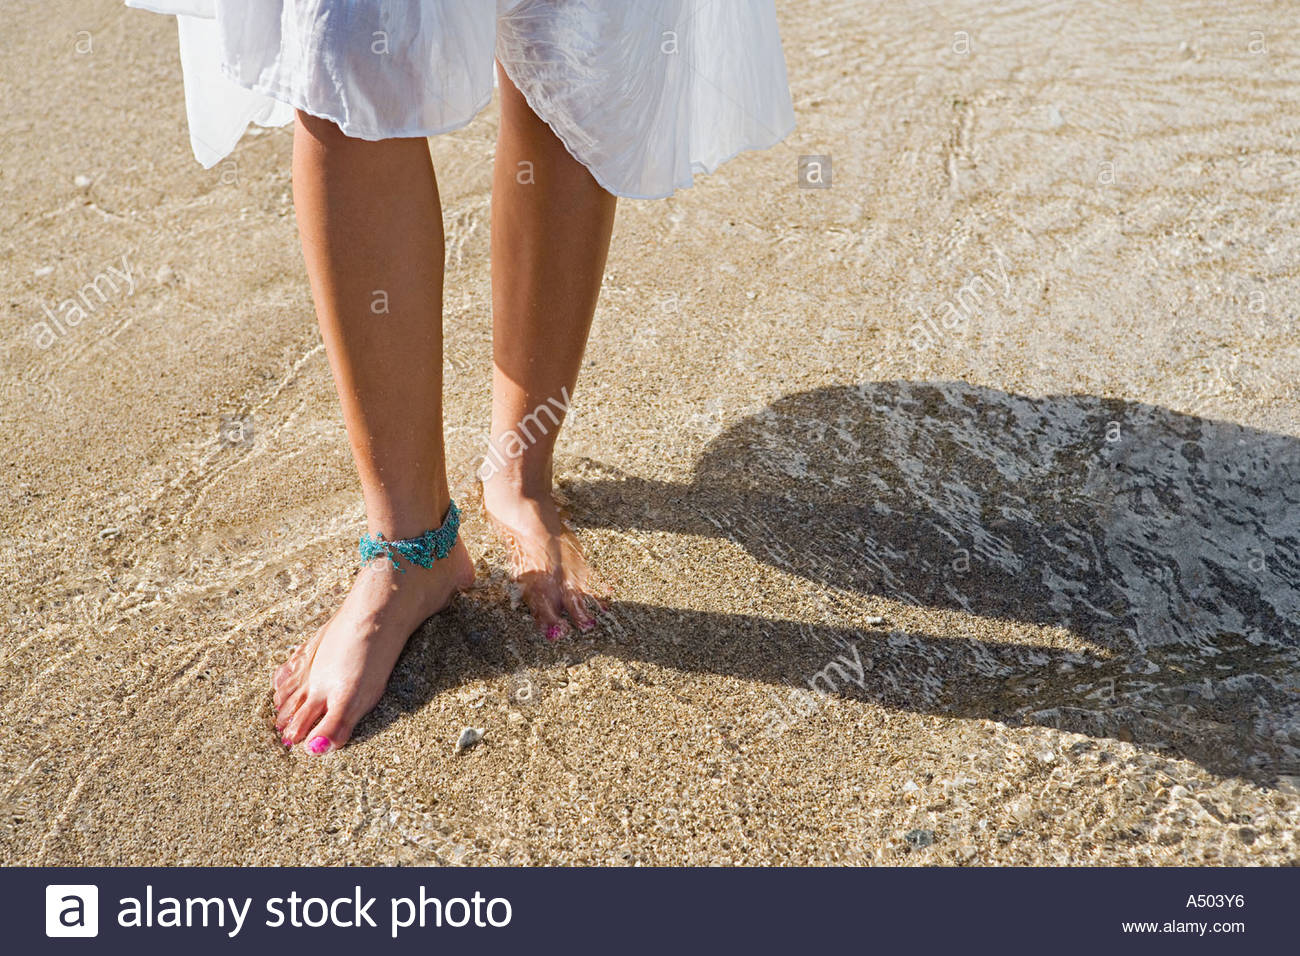 Anklet Stock Photos & Anklet Stock Images - Alamy